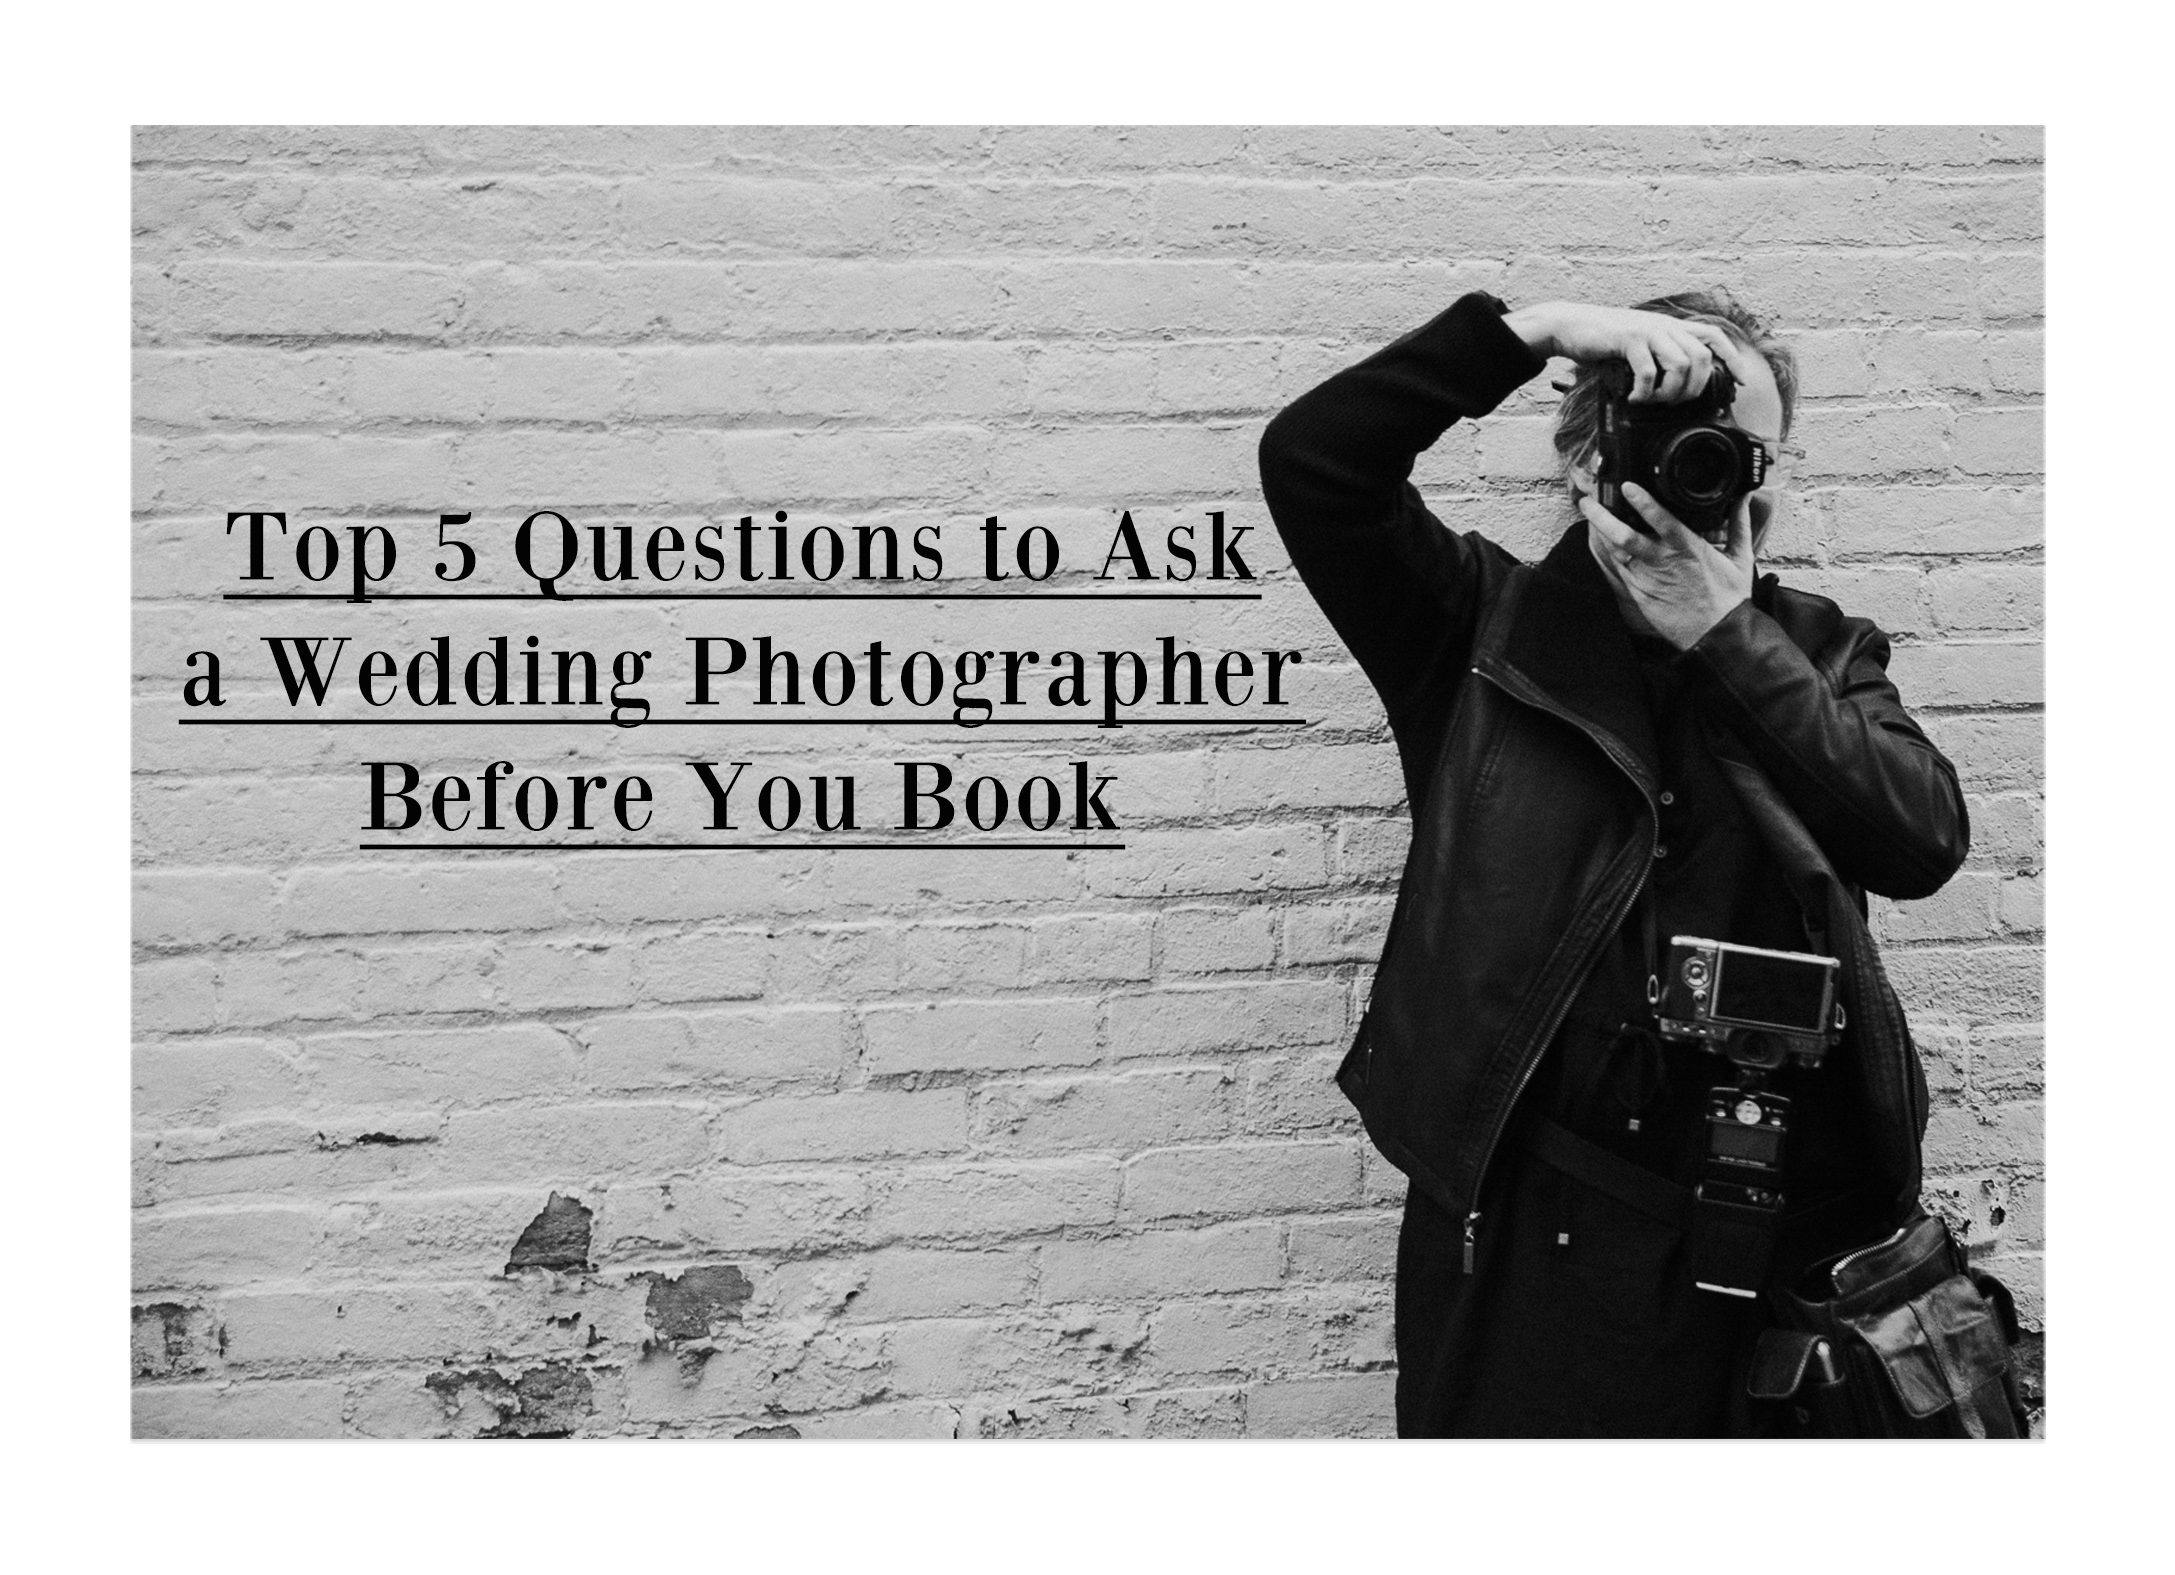 Questions to ask before booking a wedding photographer